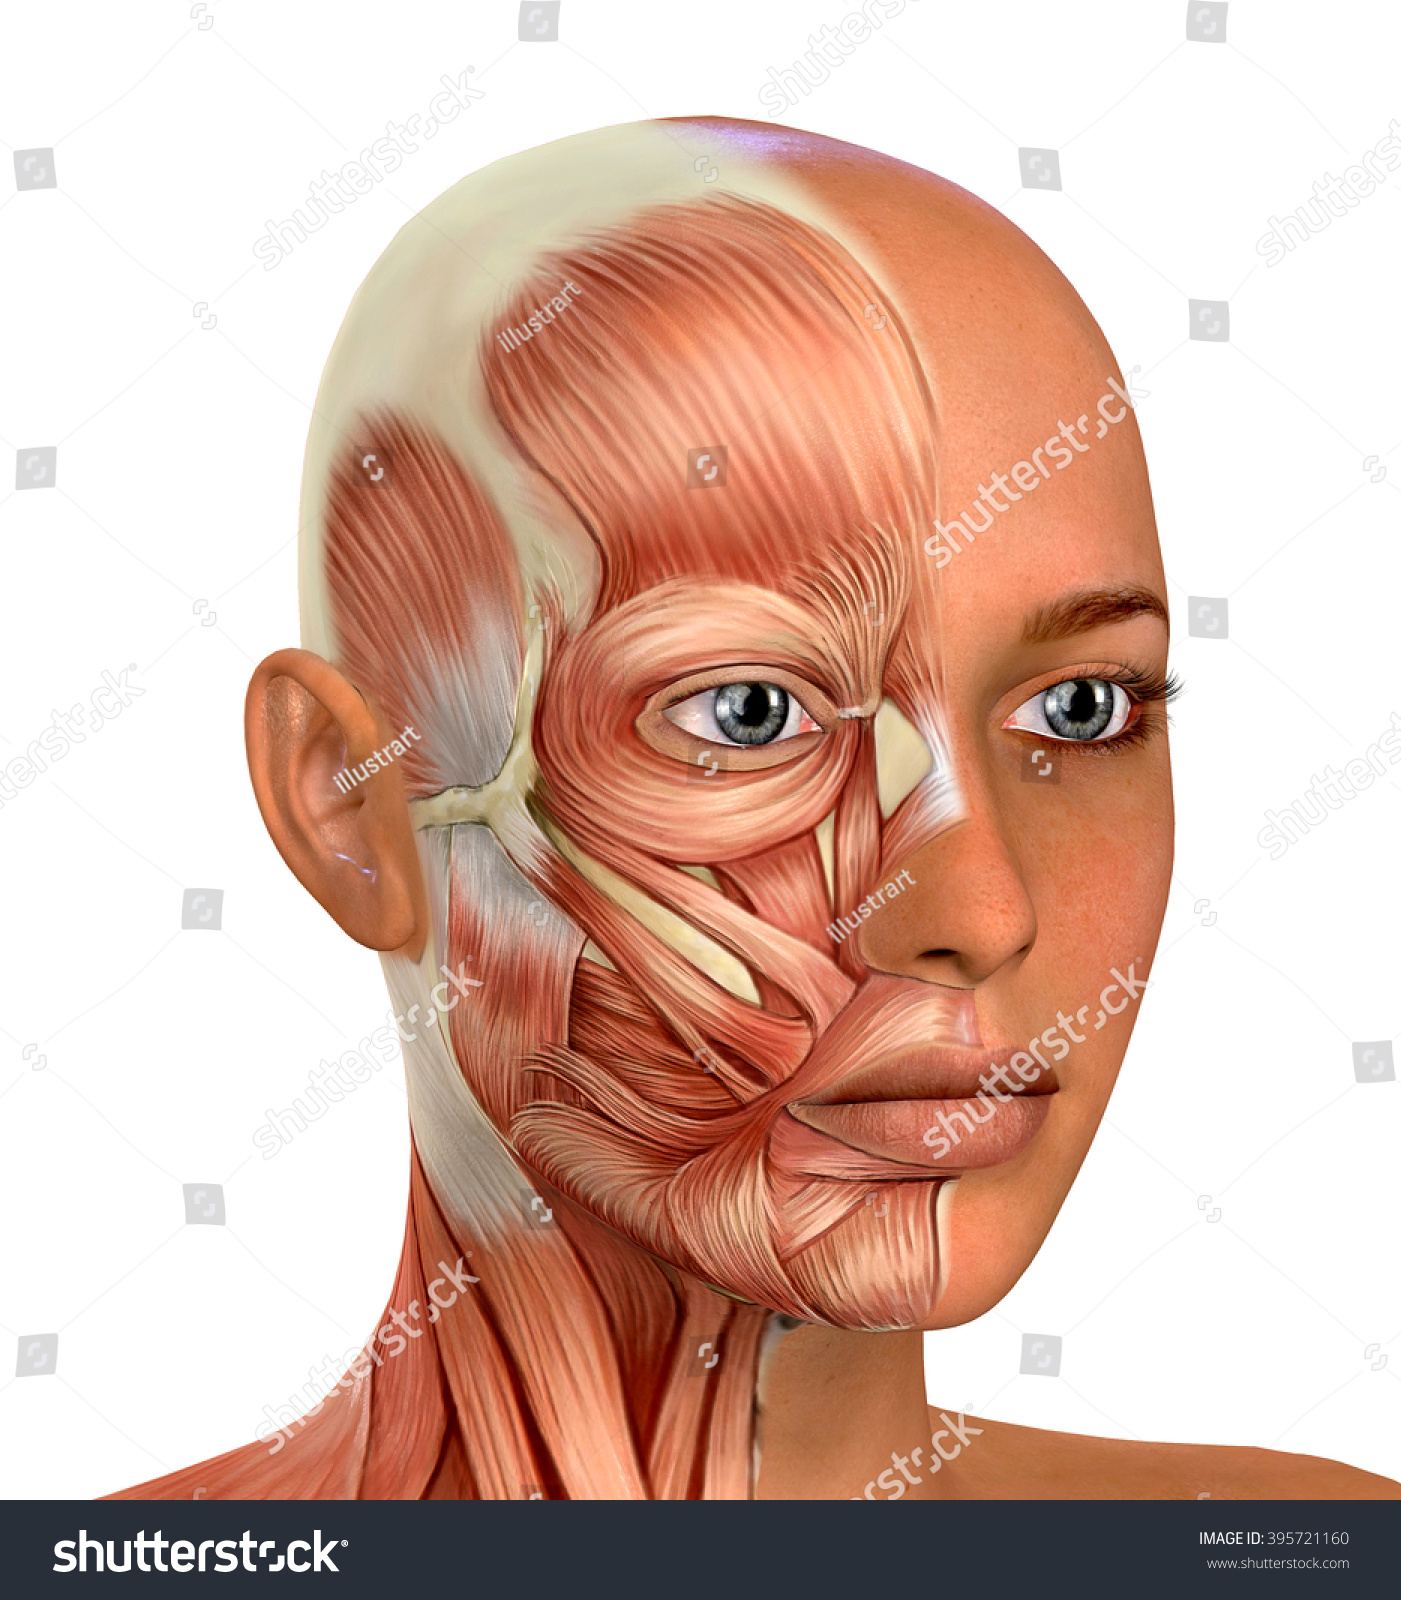 Female Face Muscles Anatomy Stock Photo